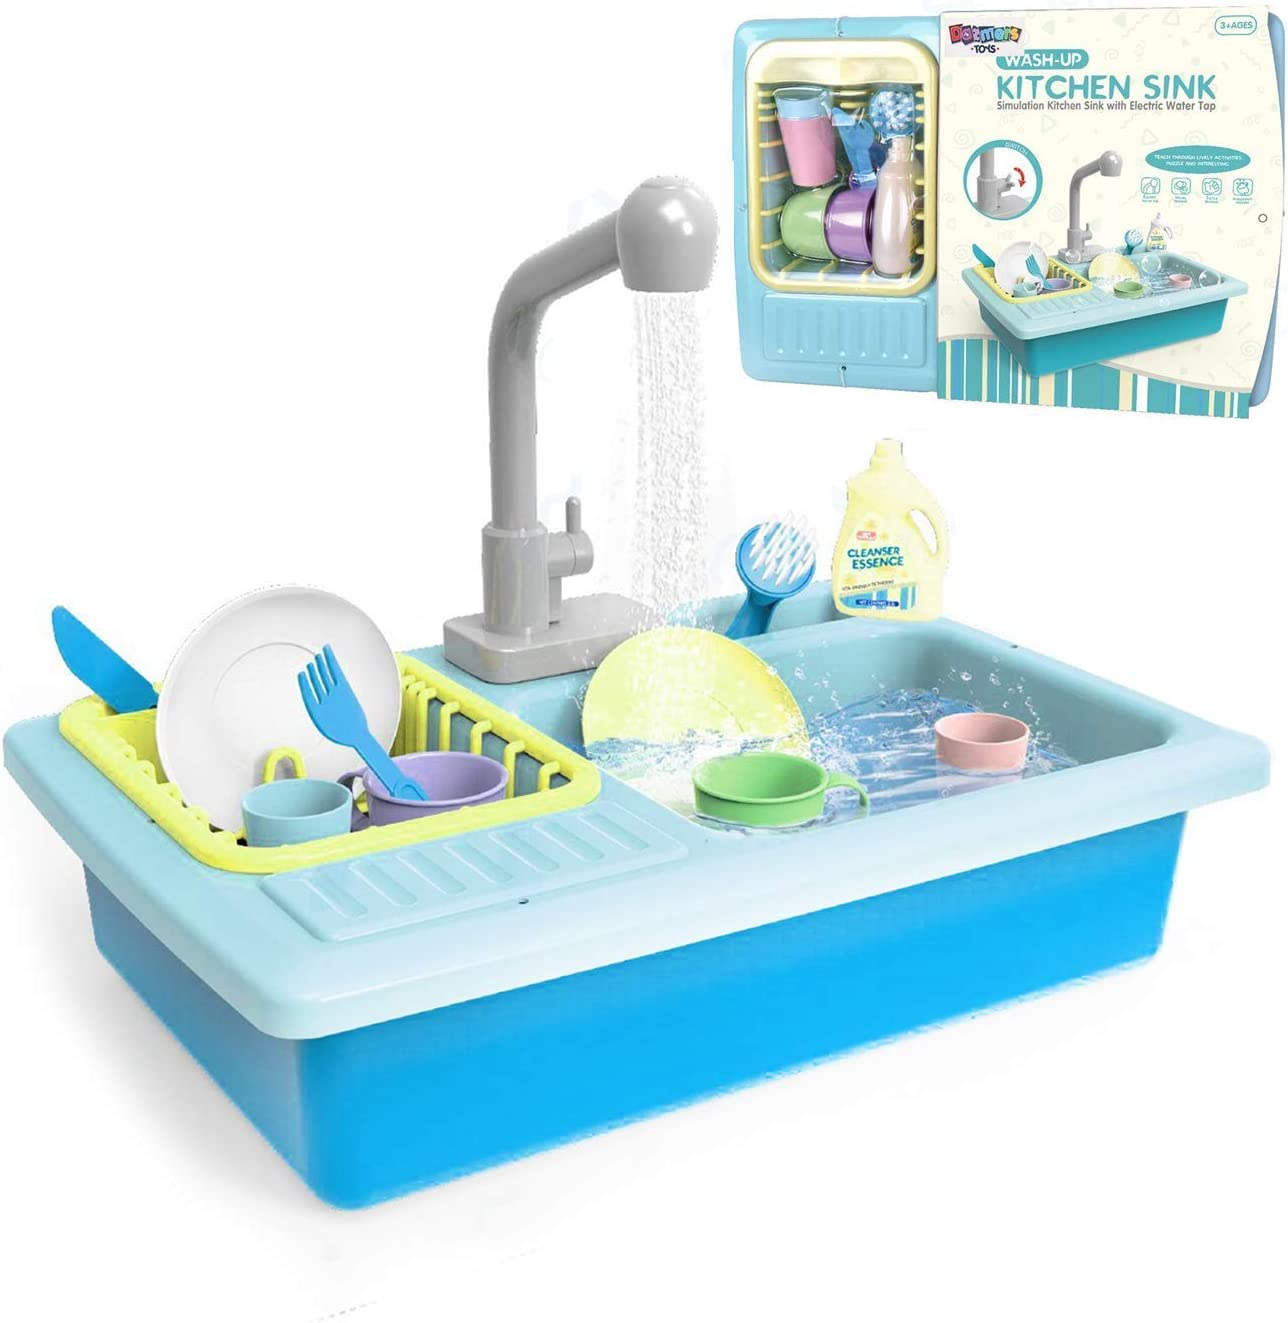 Amazon Com Toy Sink With Running Water And Dishes For Kids 16 Kitchen Sink Recycles Water Through Working Faucet Playset Includes Cups Glasses Plates Knife Fork Brush Soap Dish Rack For